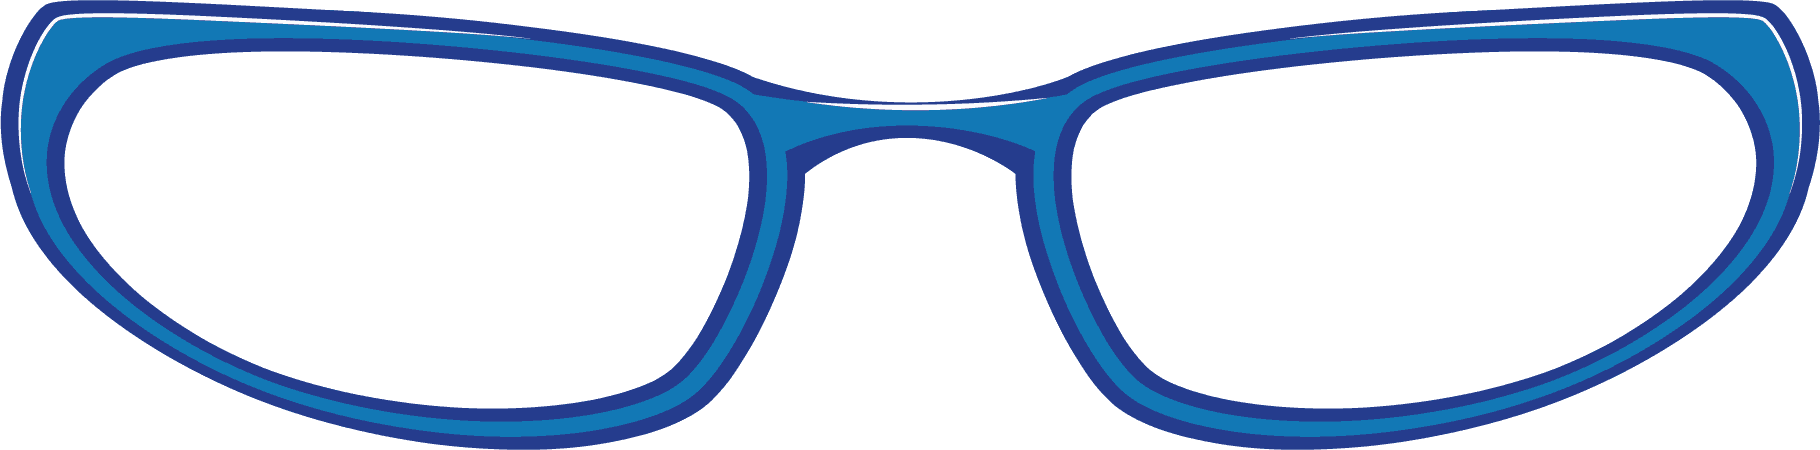 Spectacles clipart hipster glass Clip clipart collection free Eyeglasses